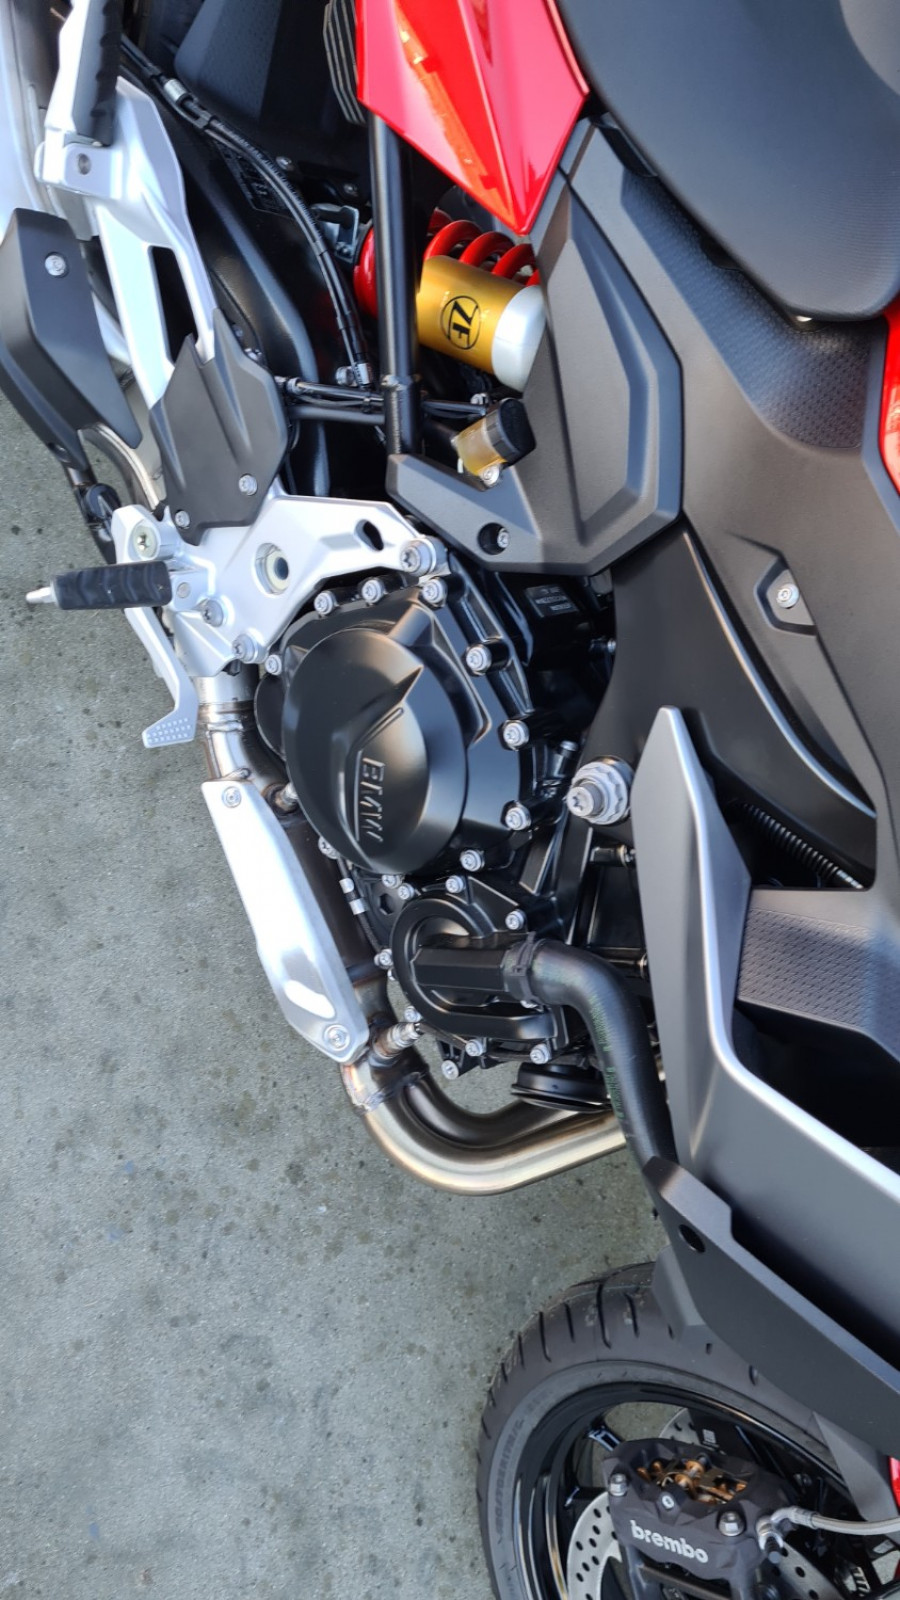 2021 BMW F 900 XR Tour F F 900 XR Tour Motorcycle Image 14